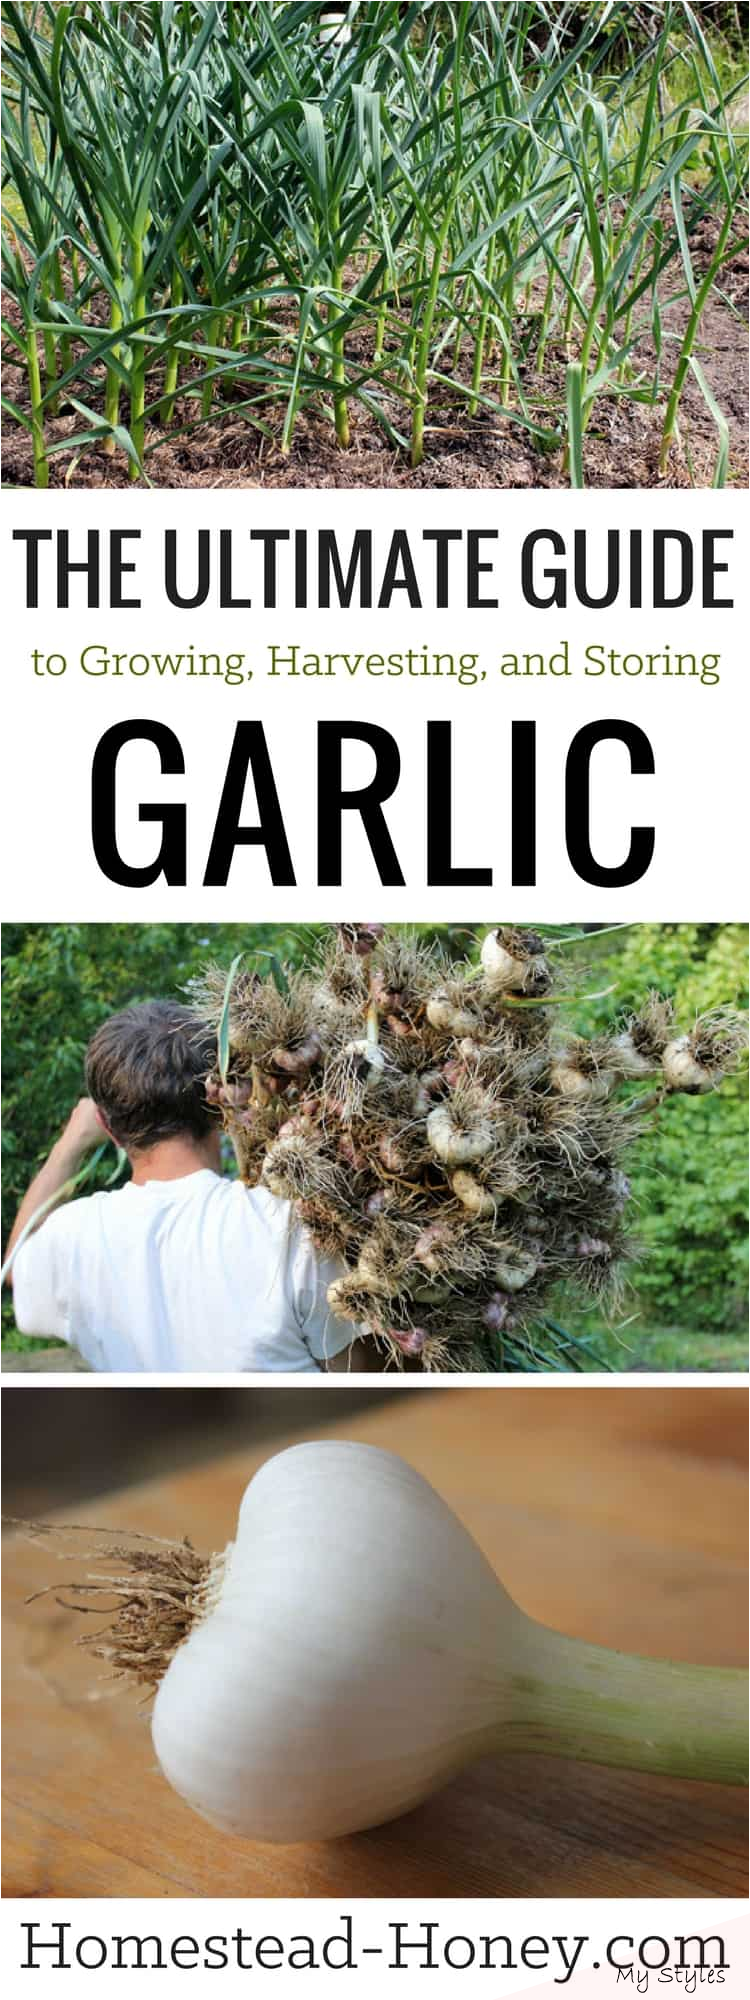 Oct 13 2019 Garlic Is Such An Easy Crop To Grow Learn All About Growing Storing And Harvesting G En 2020 Potager Interieur Culture Des Legumes Potager Domestique